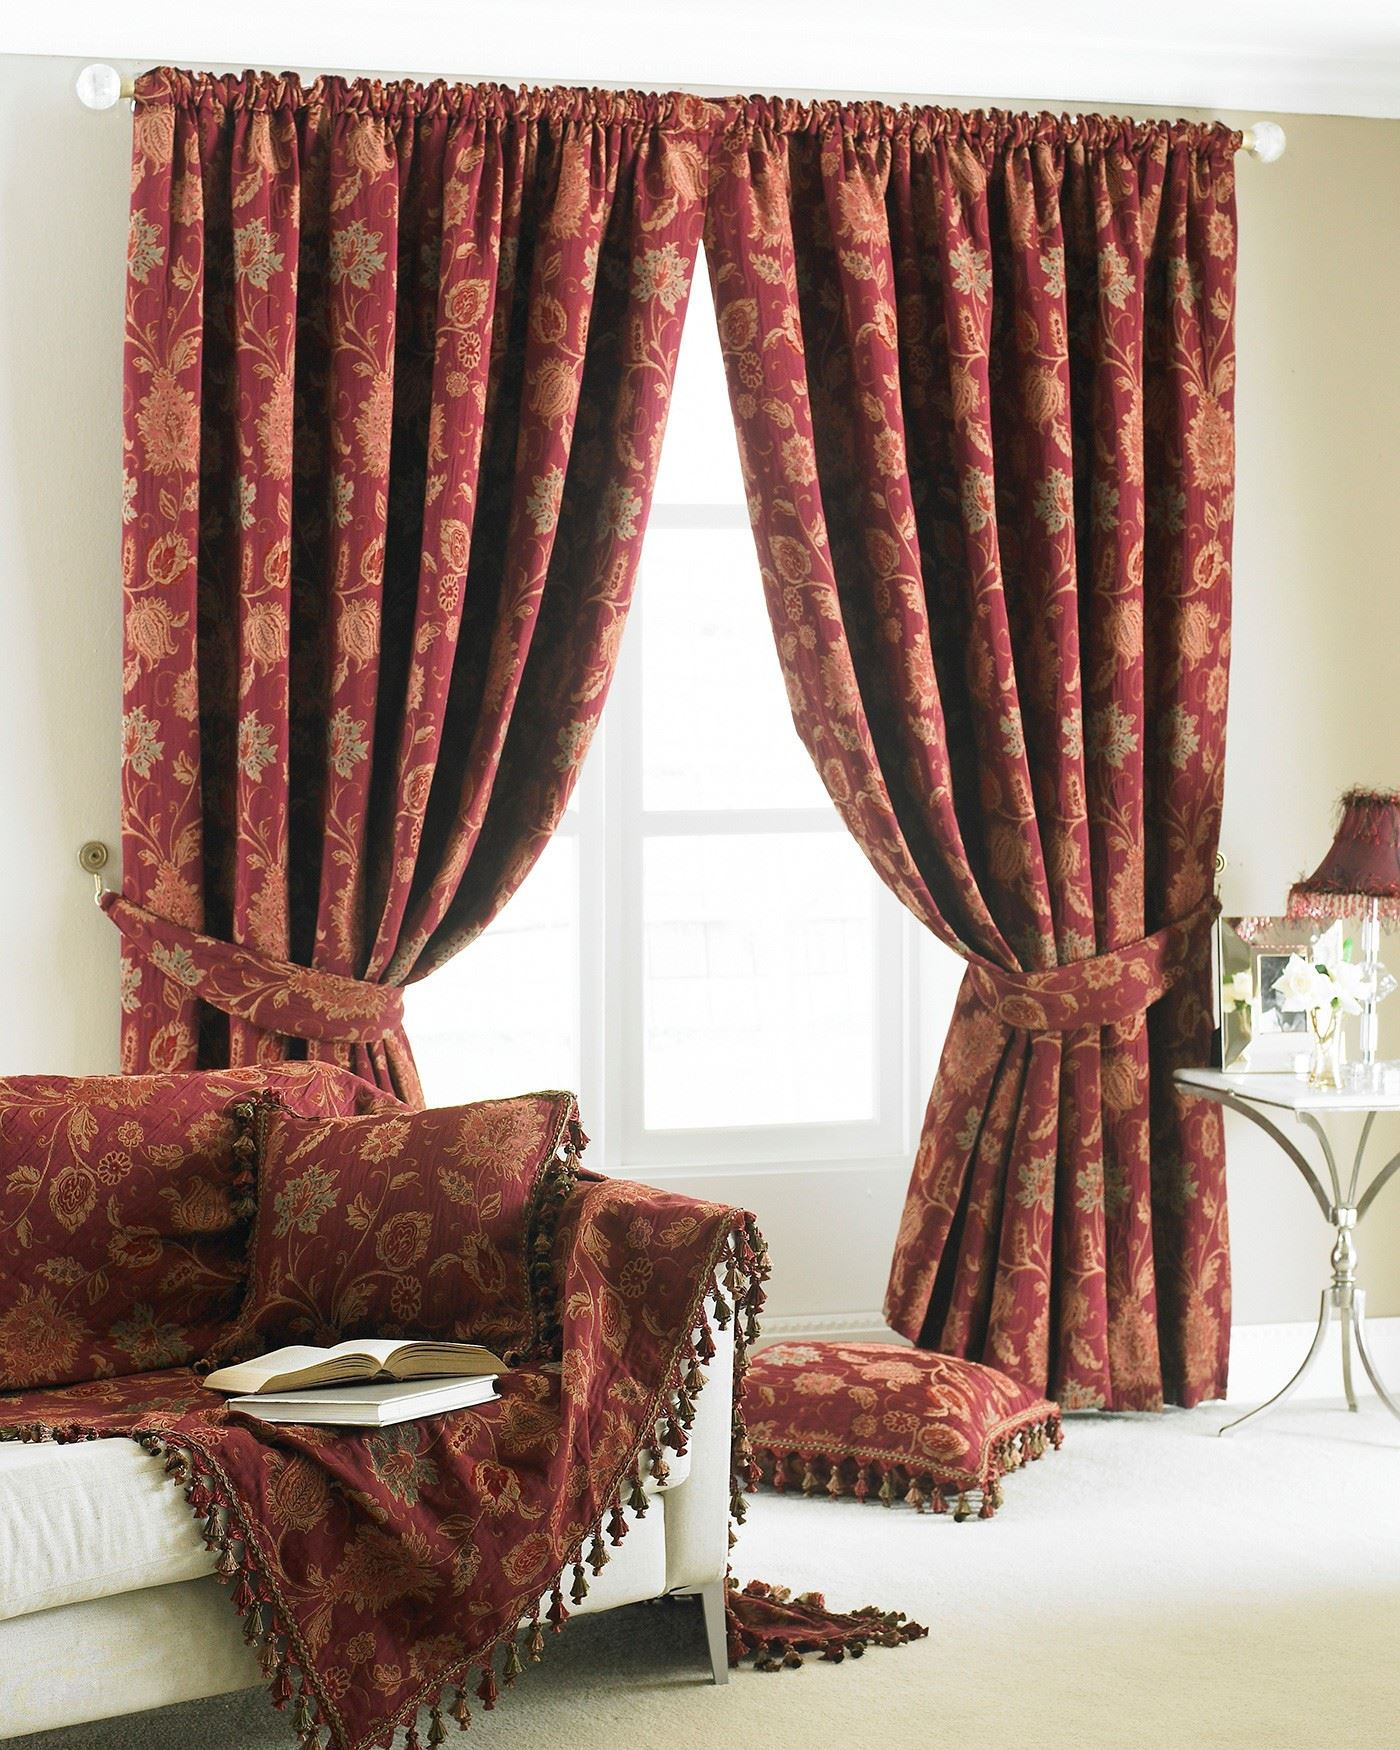 bedroom ideas gorgeous curtain for pole br perfect fabulous curtains sale endearing window cream bright prodigious size exquisit of valances ideal riveting brown striped f full dazzle material gold bathroom diy unforeseen valance red phenomenal and stunning windows with